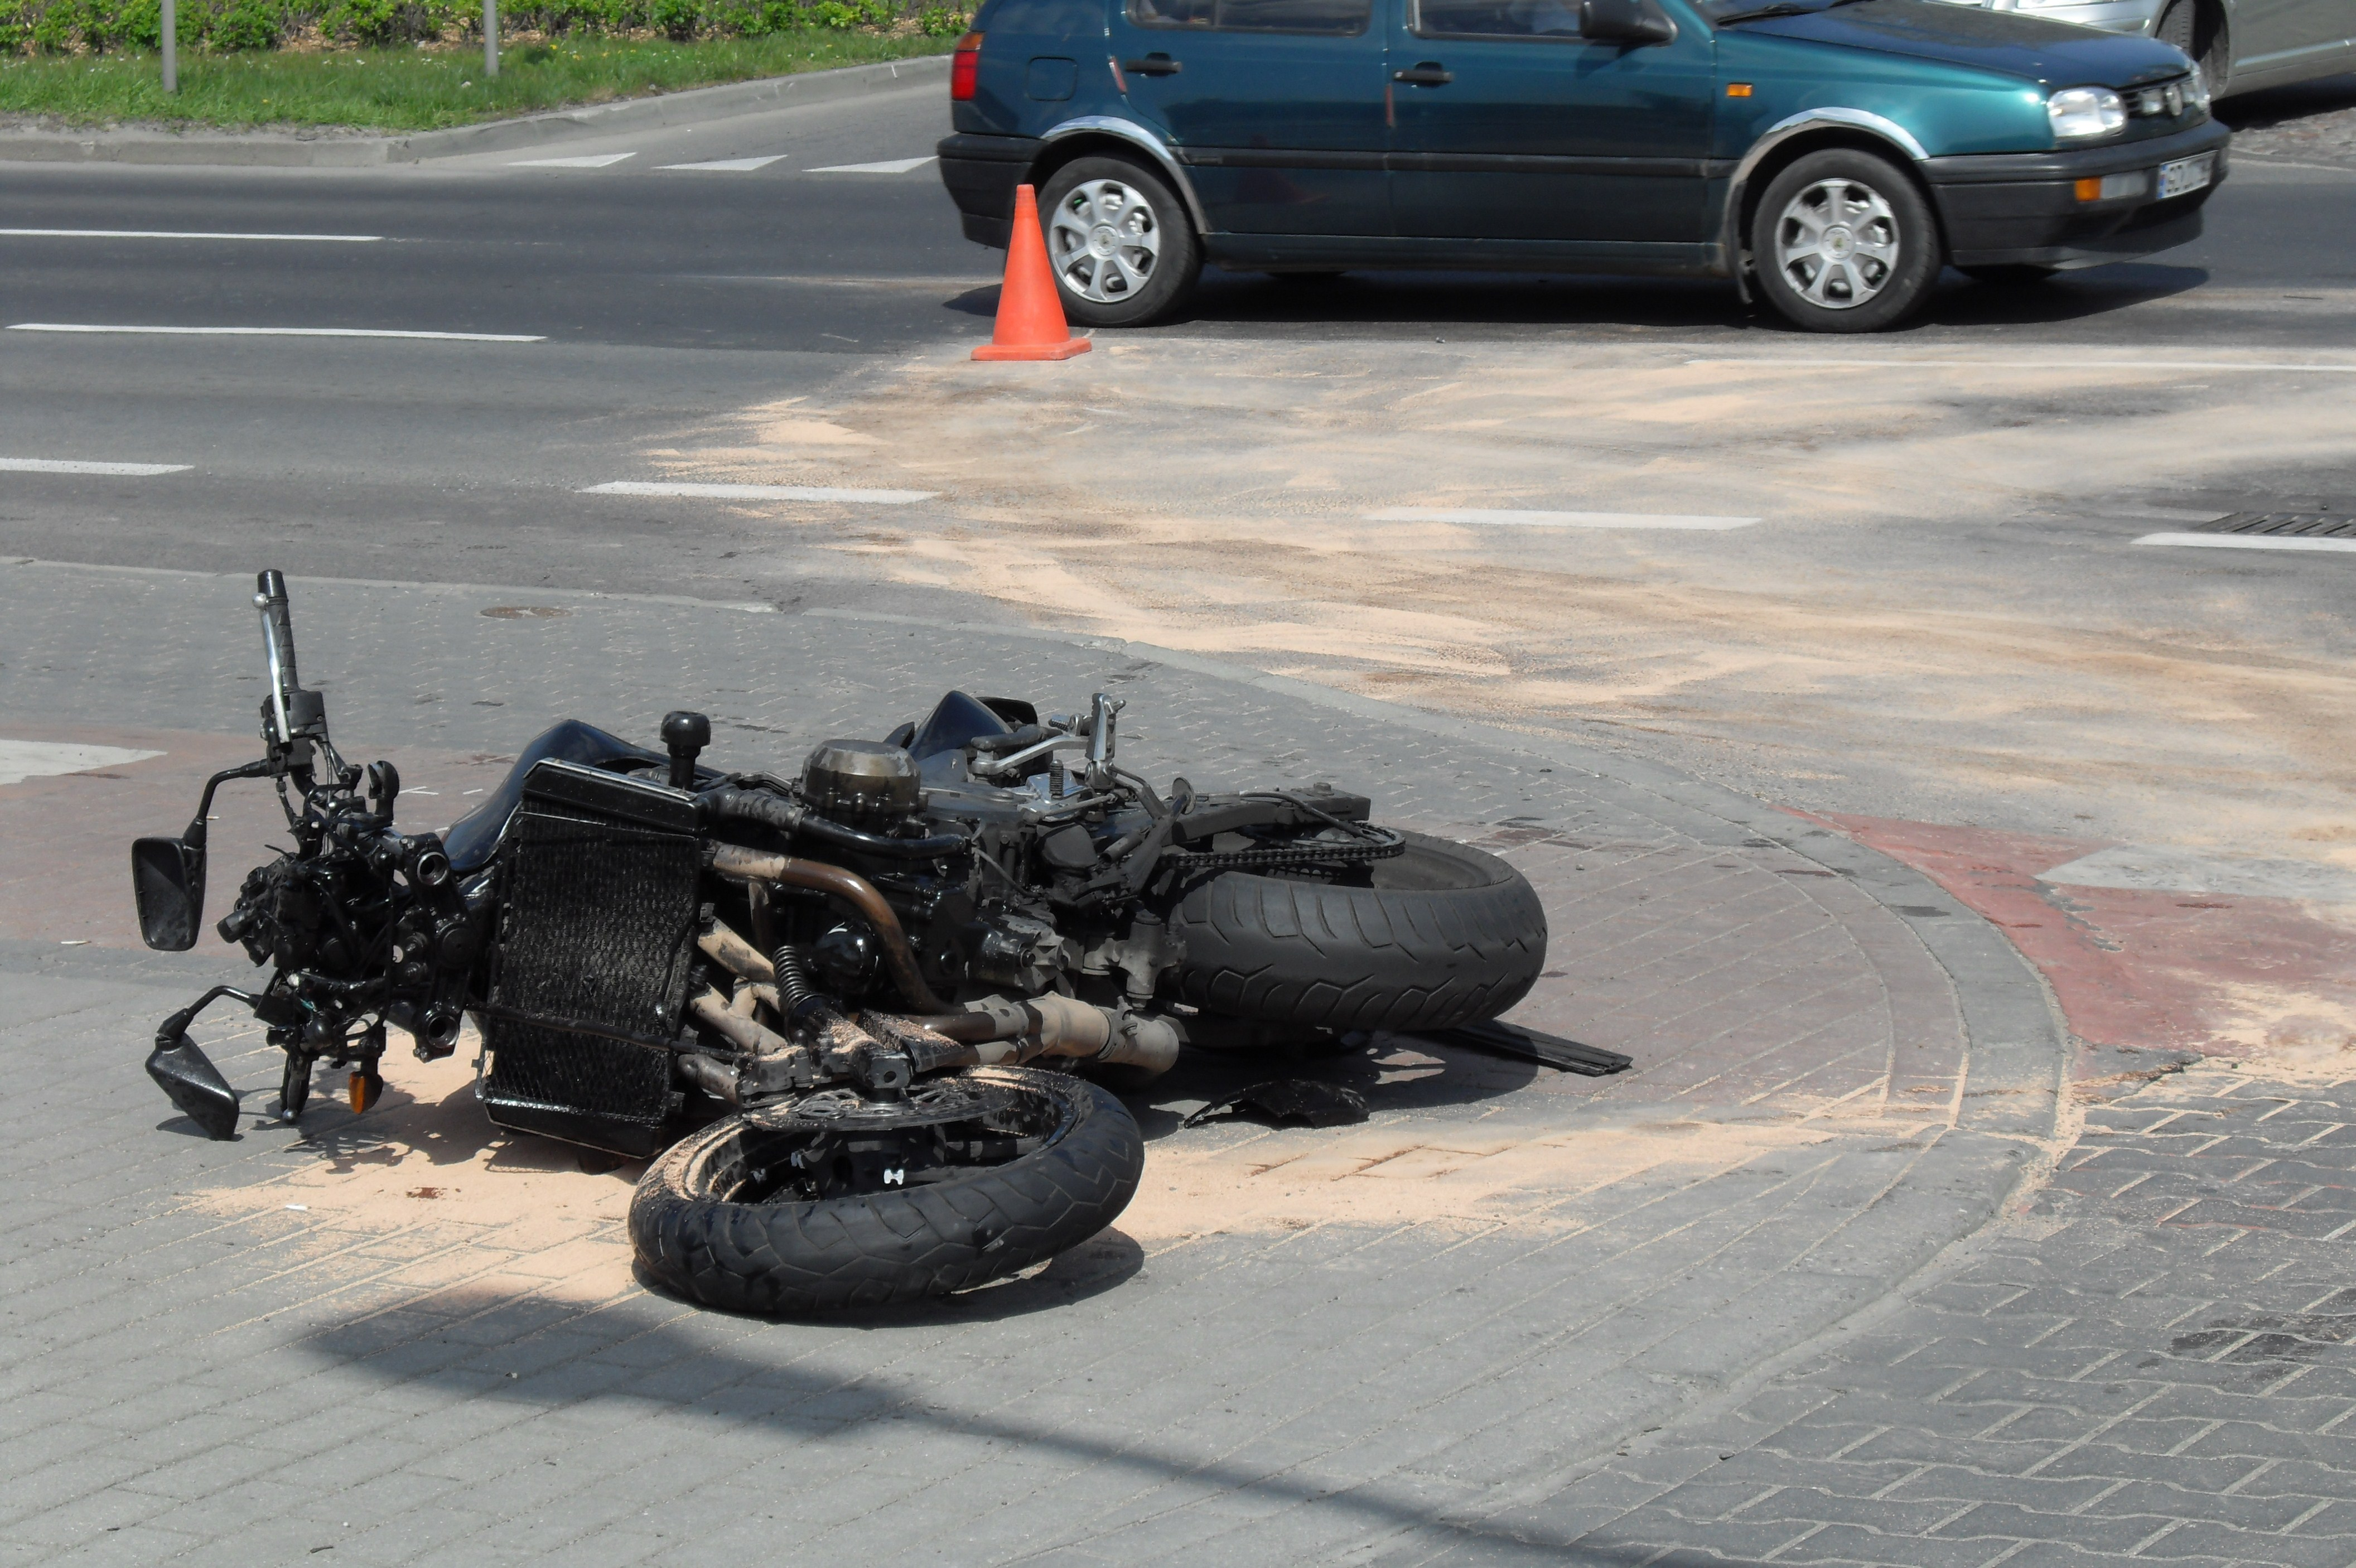 Fatal Motorcycle Accidents On the Rise in 2015, NHTSA